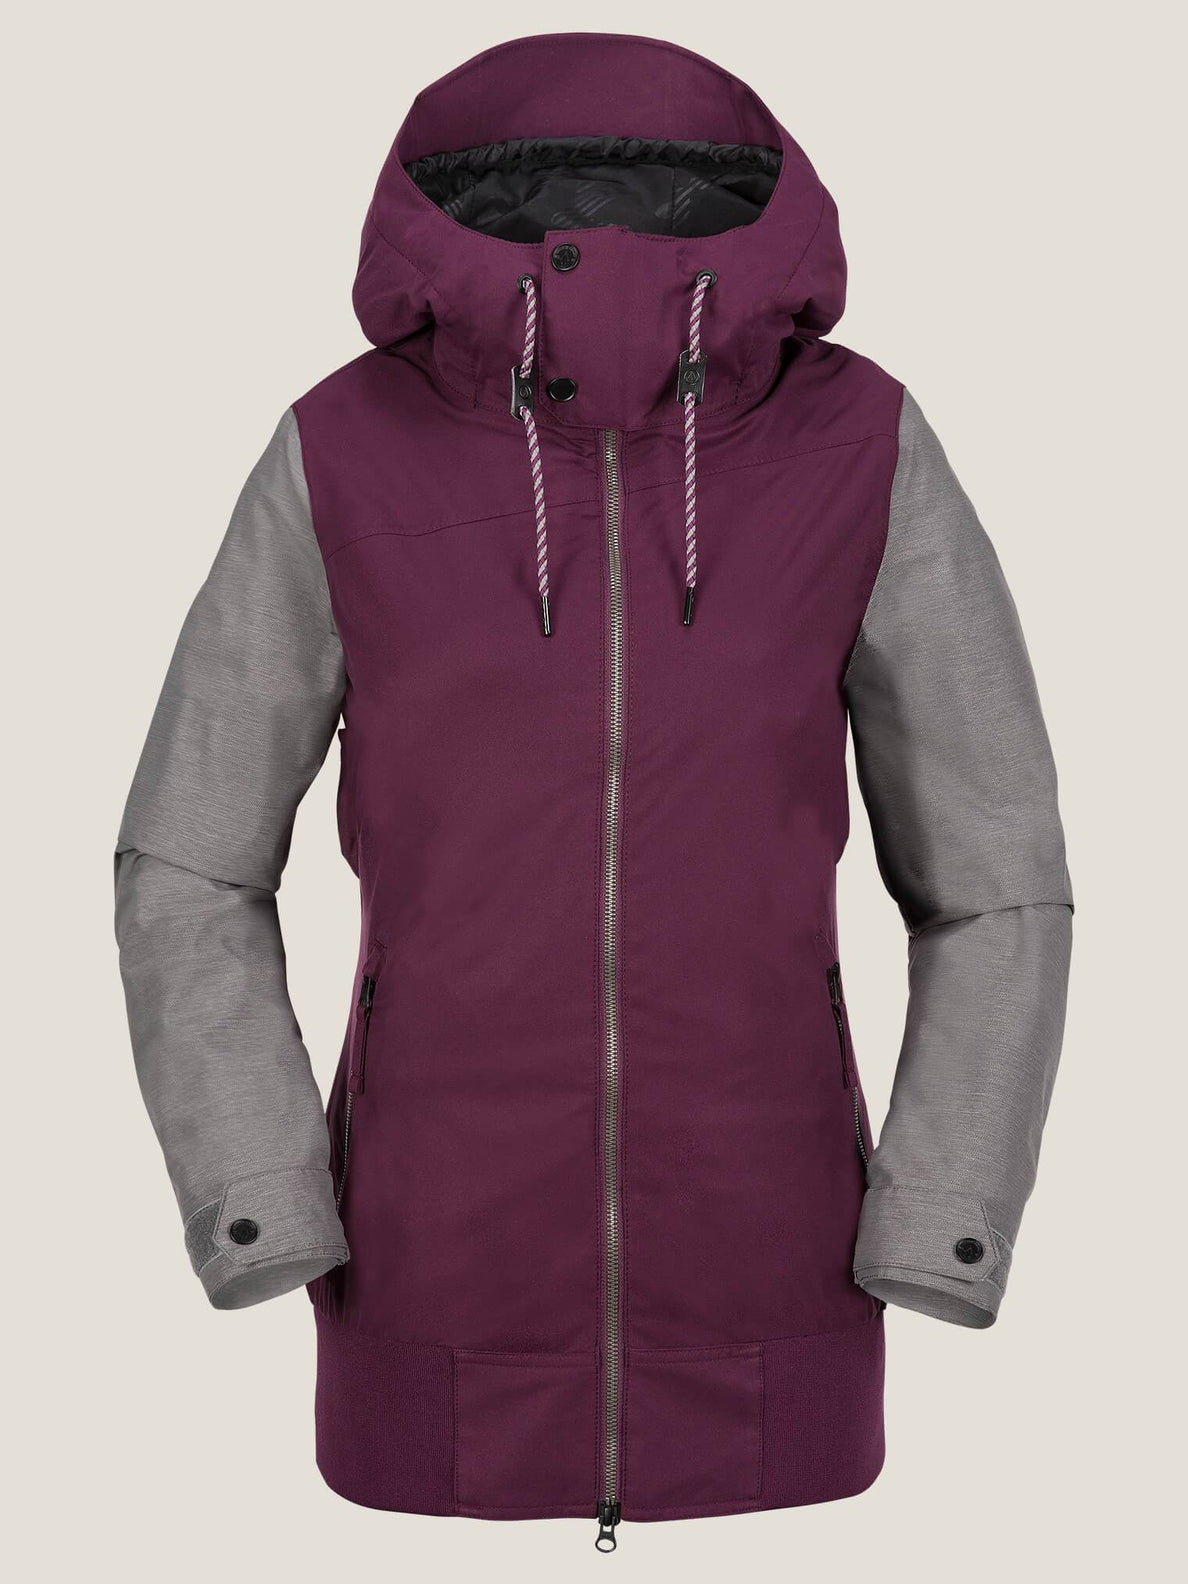 Stave Jacket In Winter Orchid, Front View